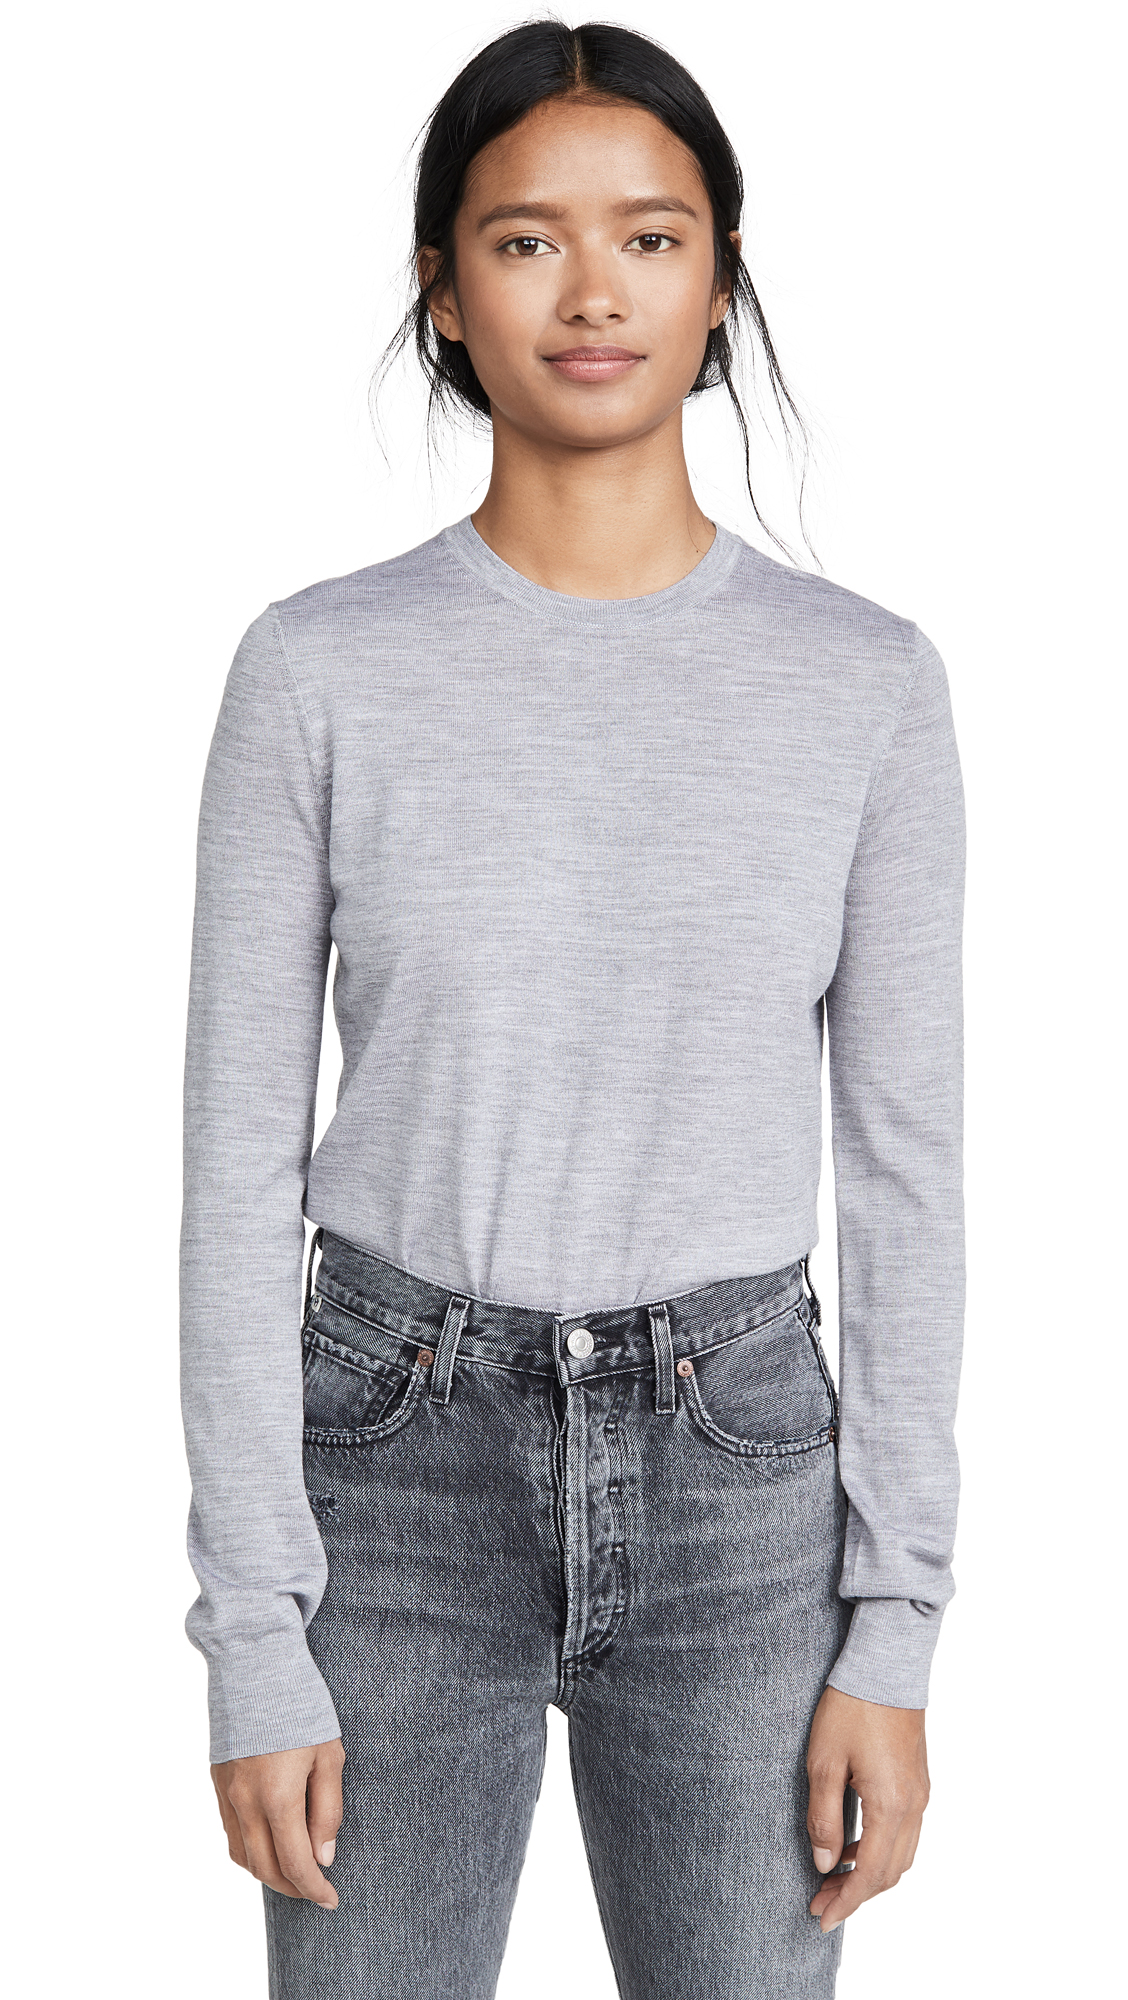 Theory Tops CREW NECK PULLOVER